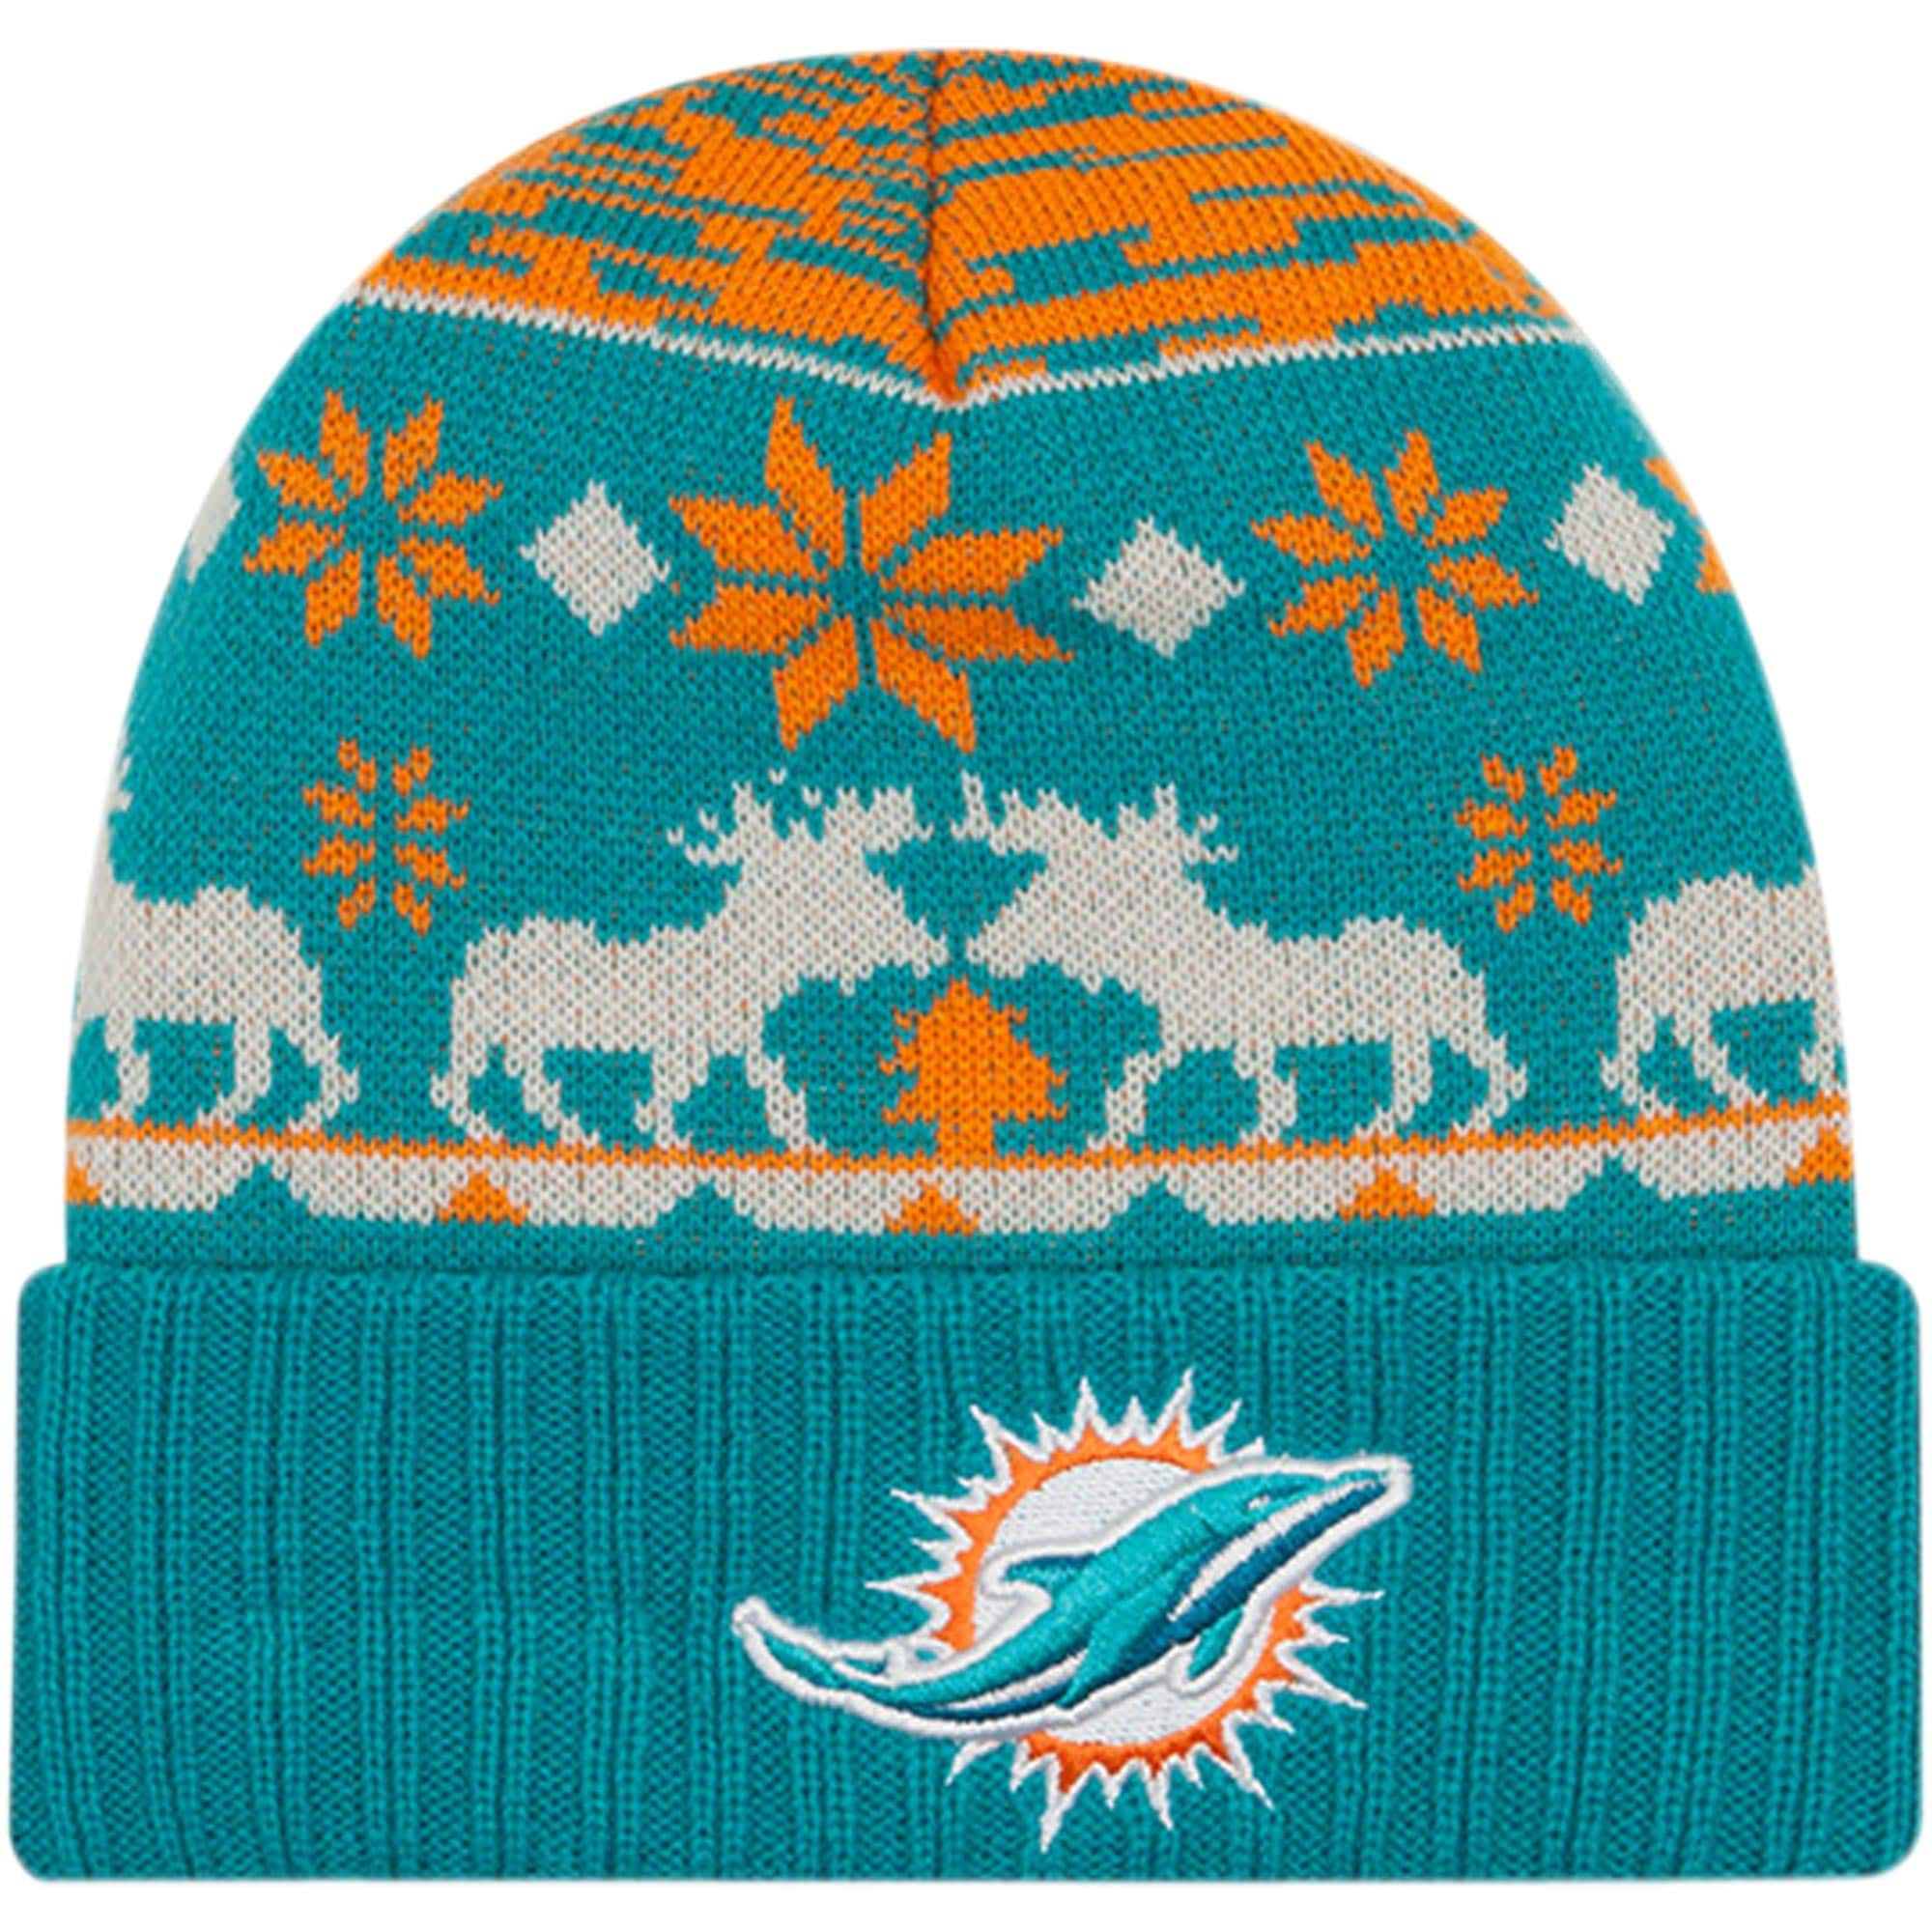 Miami Dolphins New Era Mooser Cuffed Knit Hat - Aqua